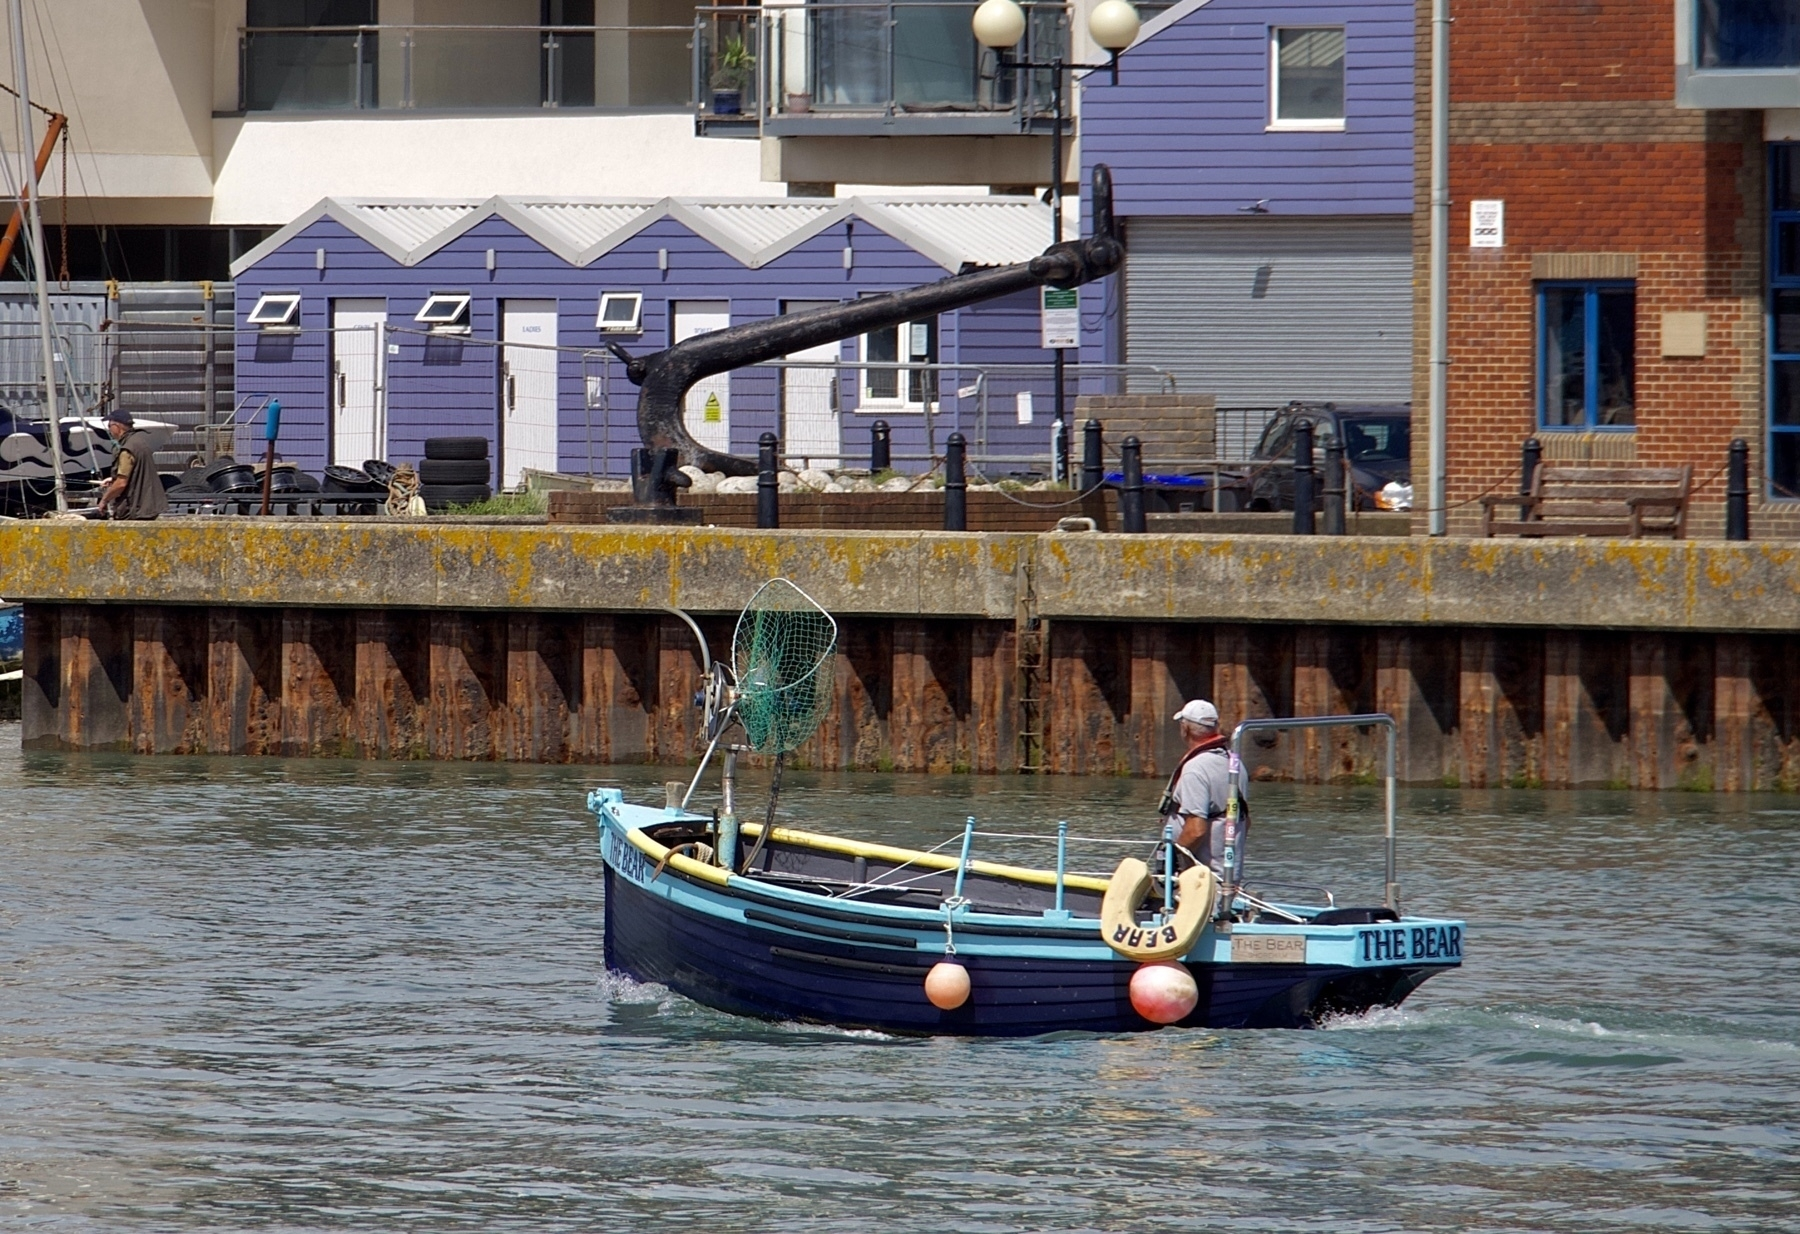 A small fishing boat called The Bear in The Adur.